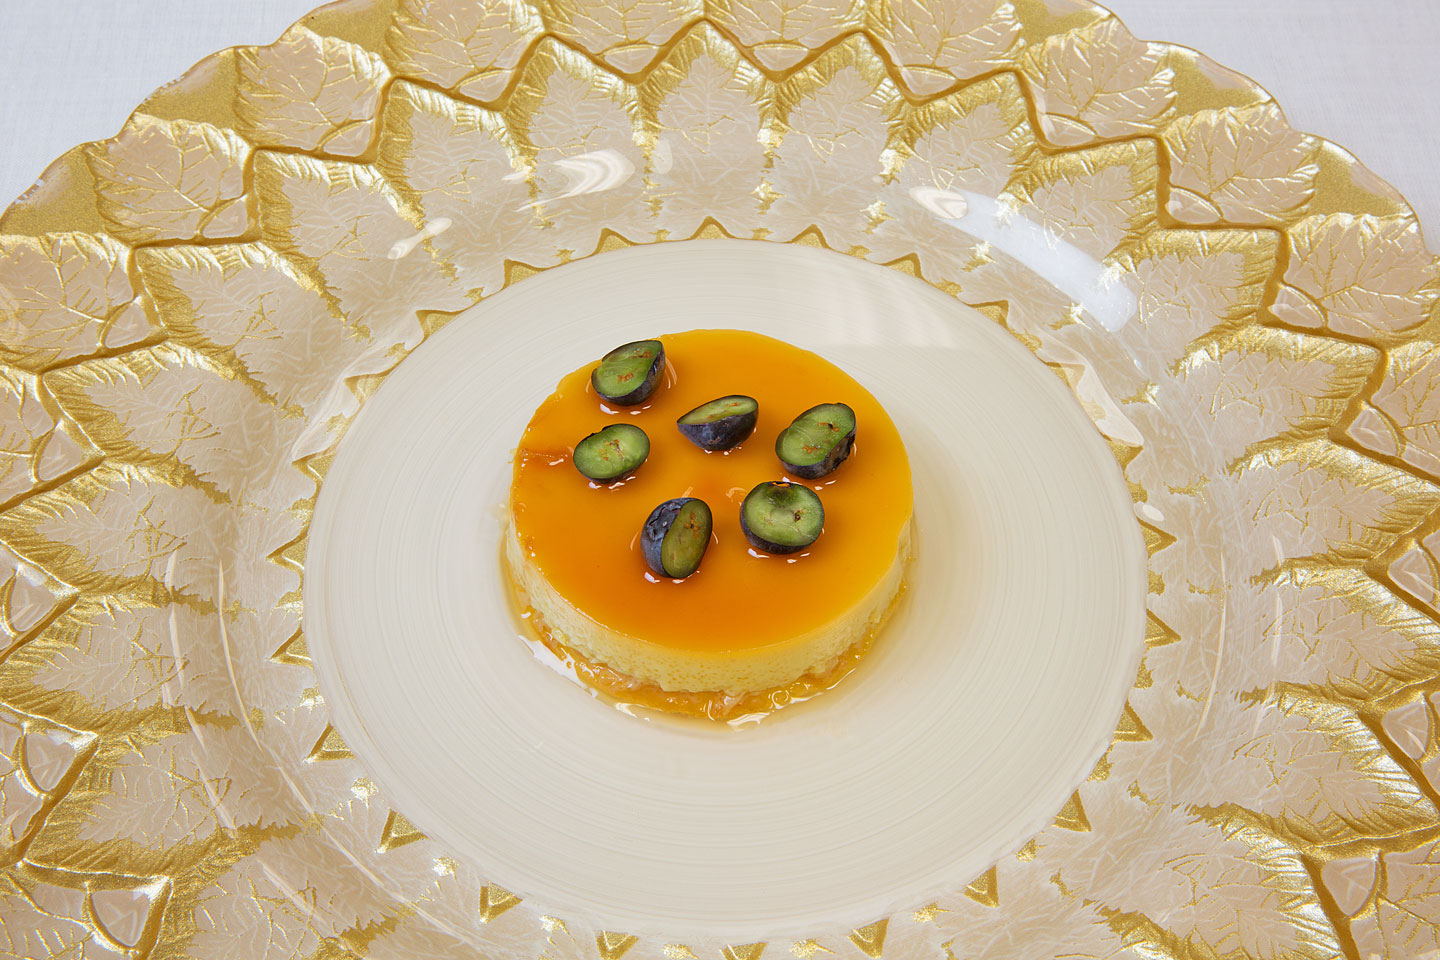 a delicious caramel flan dessert centered on a beautiful Florence charger plate, photographed by Jacob Rosenfeld